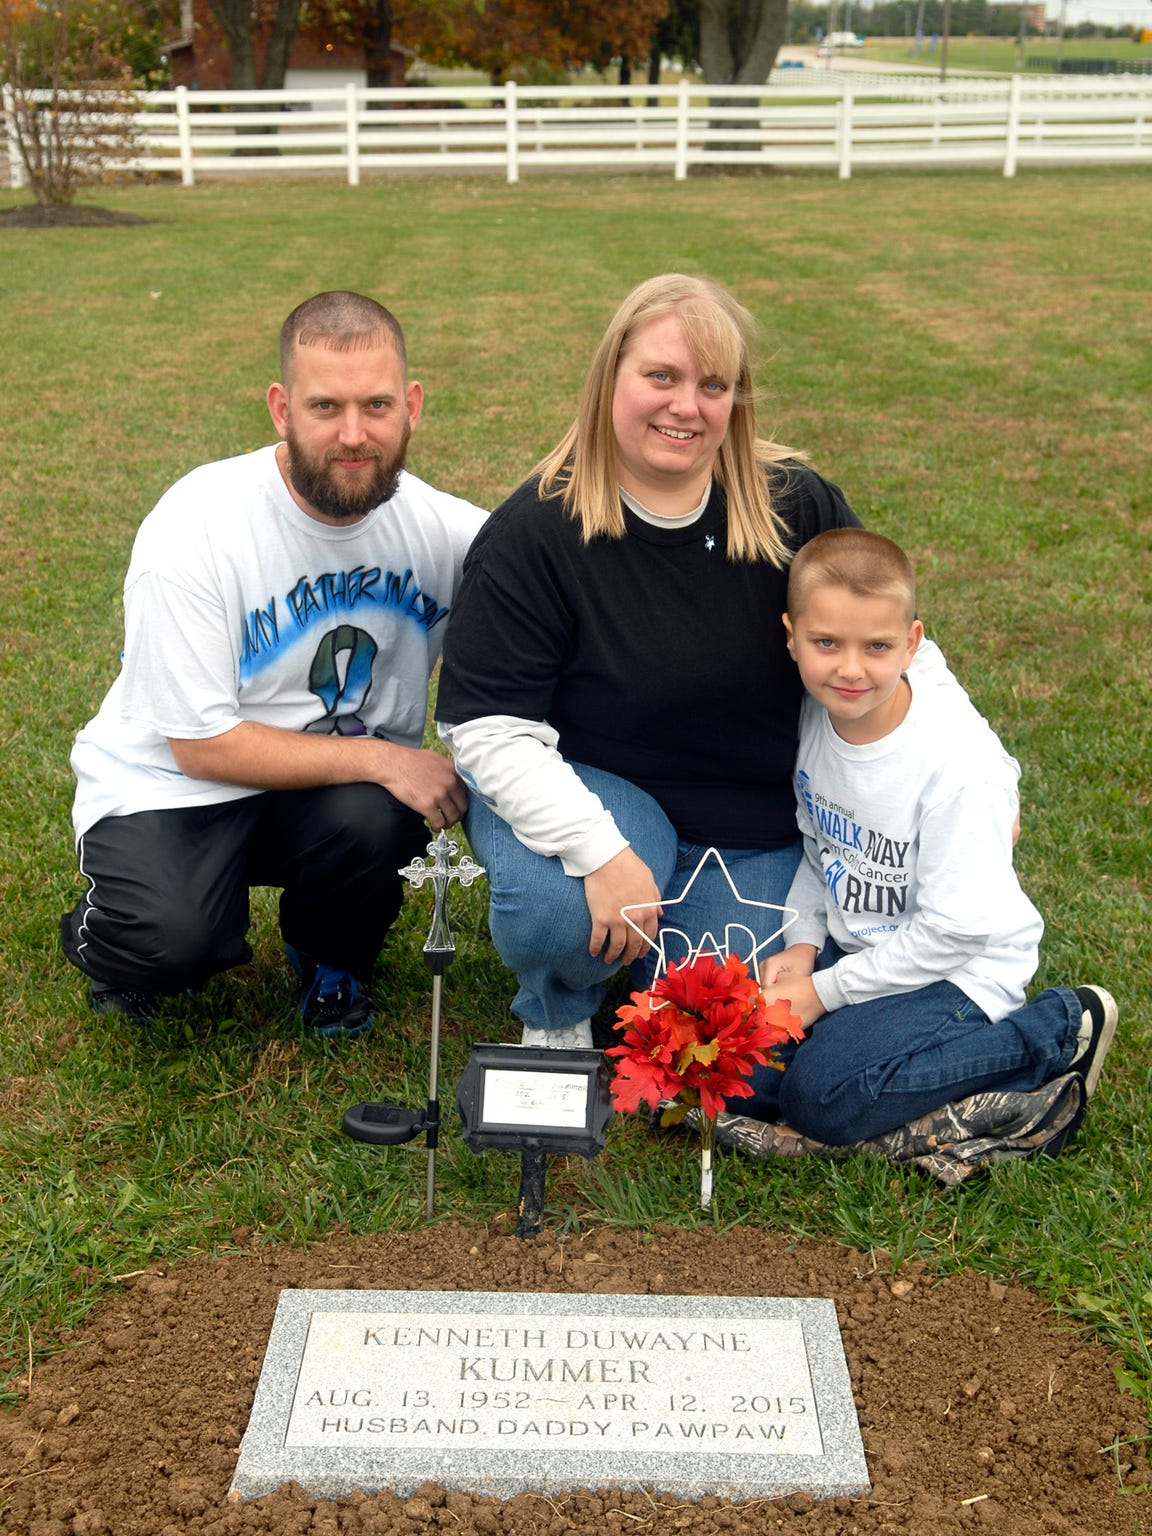 Allen and Shannon McCowan and their son, AJ, 9, pose